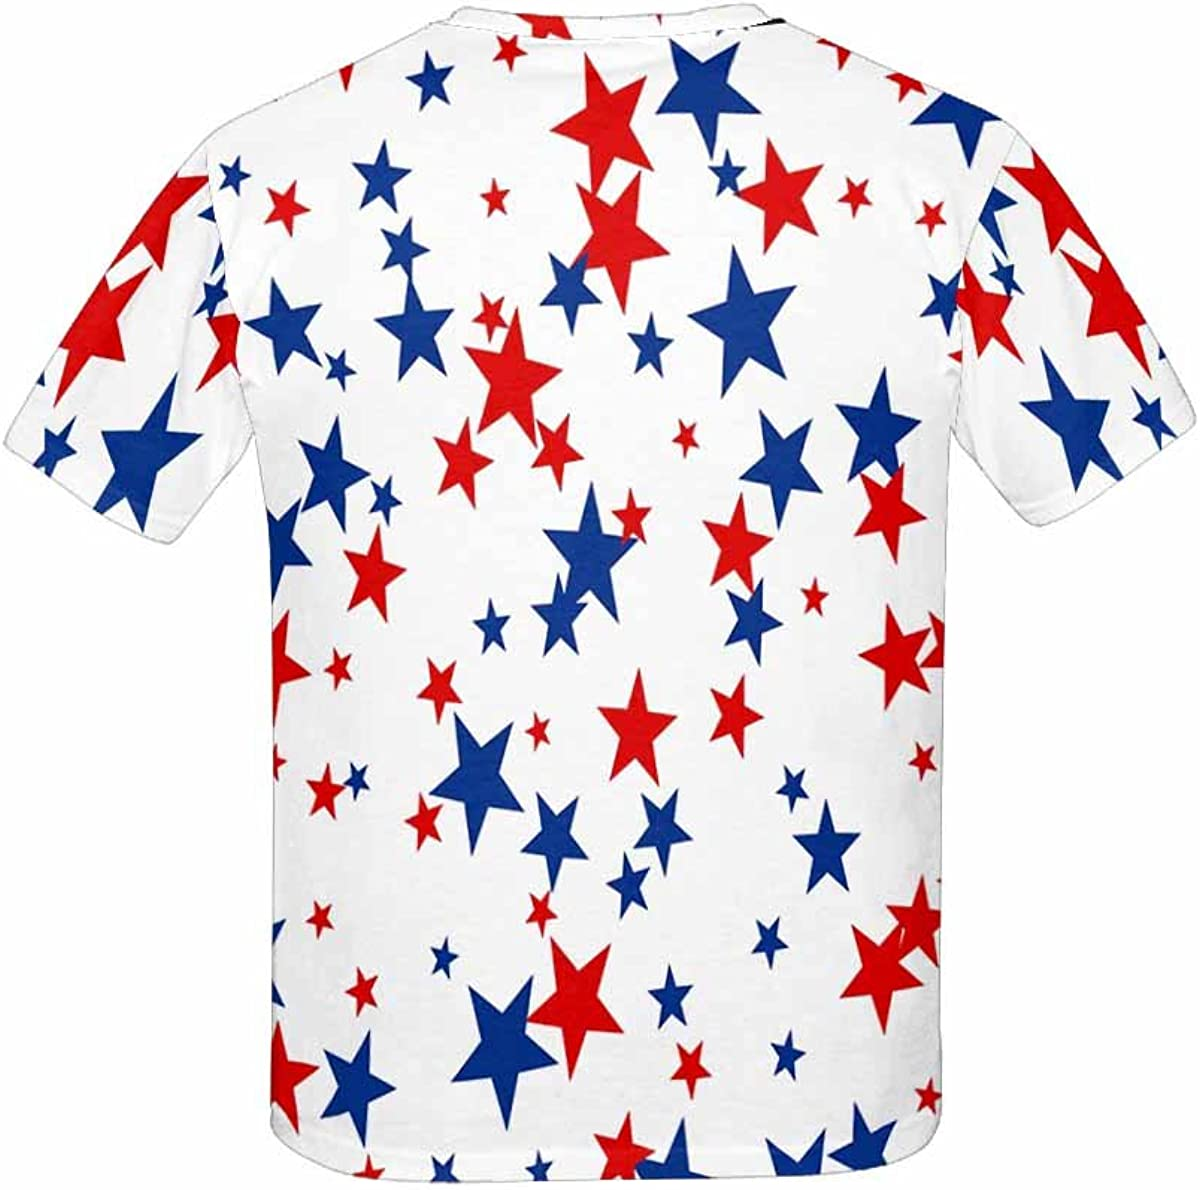 INTERESTPRINT American Red and Blue Stars Childs T-Shirt XS-XL